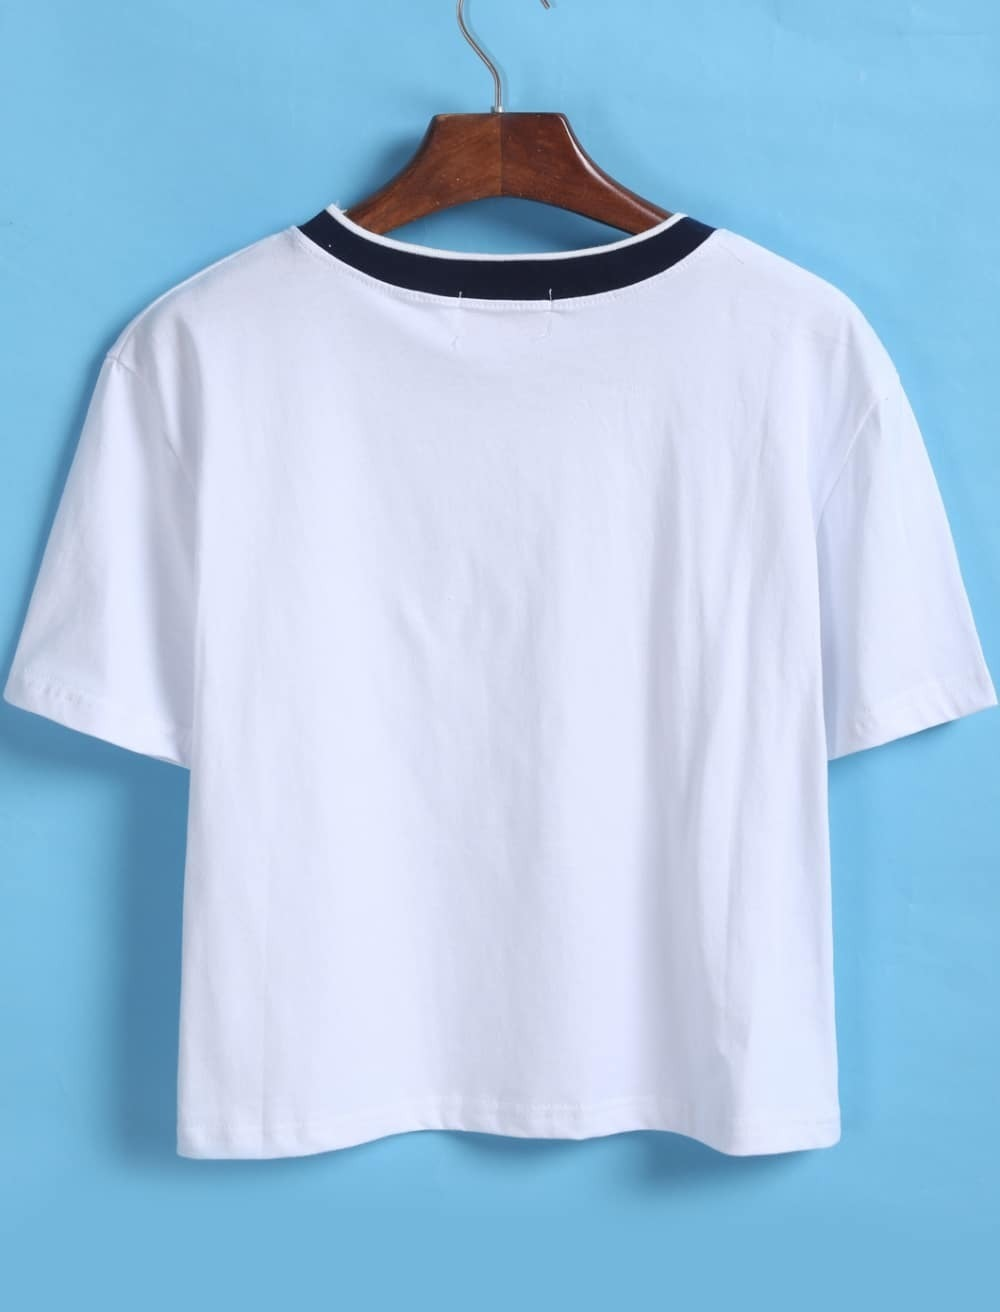 Contrast collar loose crop white t shirt for Cropped white collared shirt